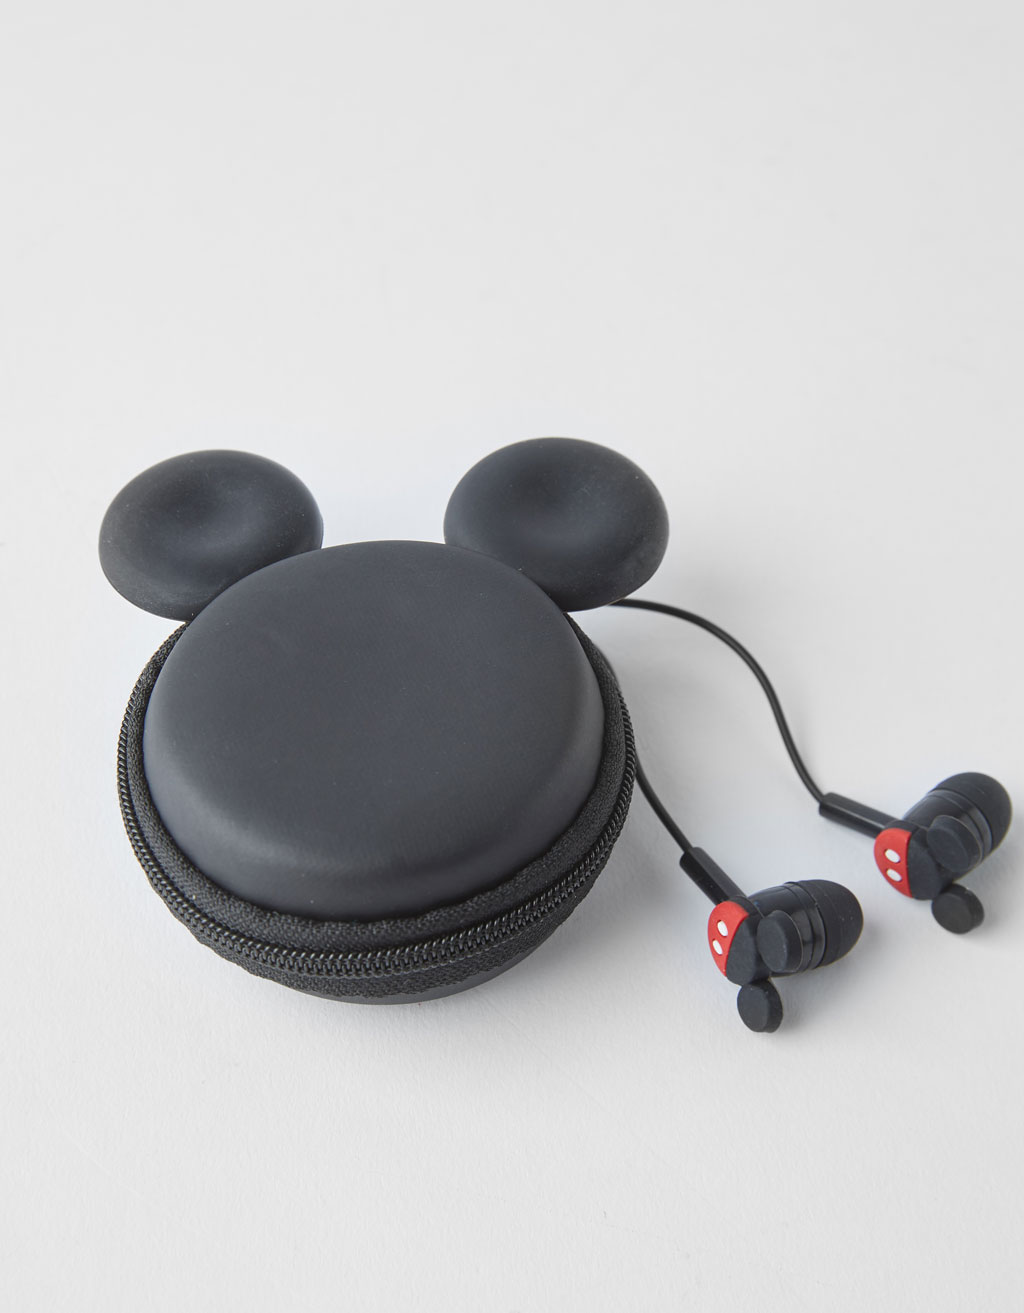 Mickey/Minnie headphones with carrying case